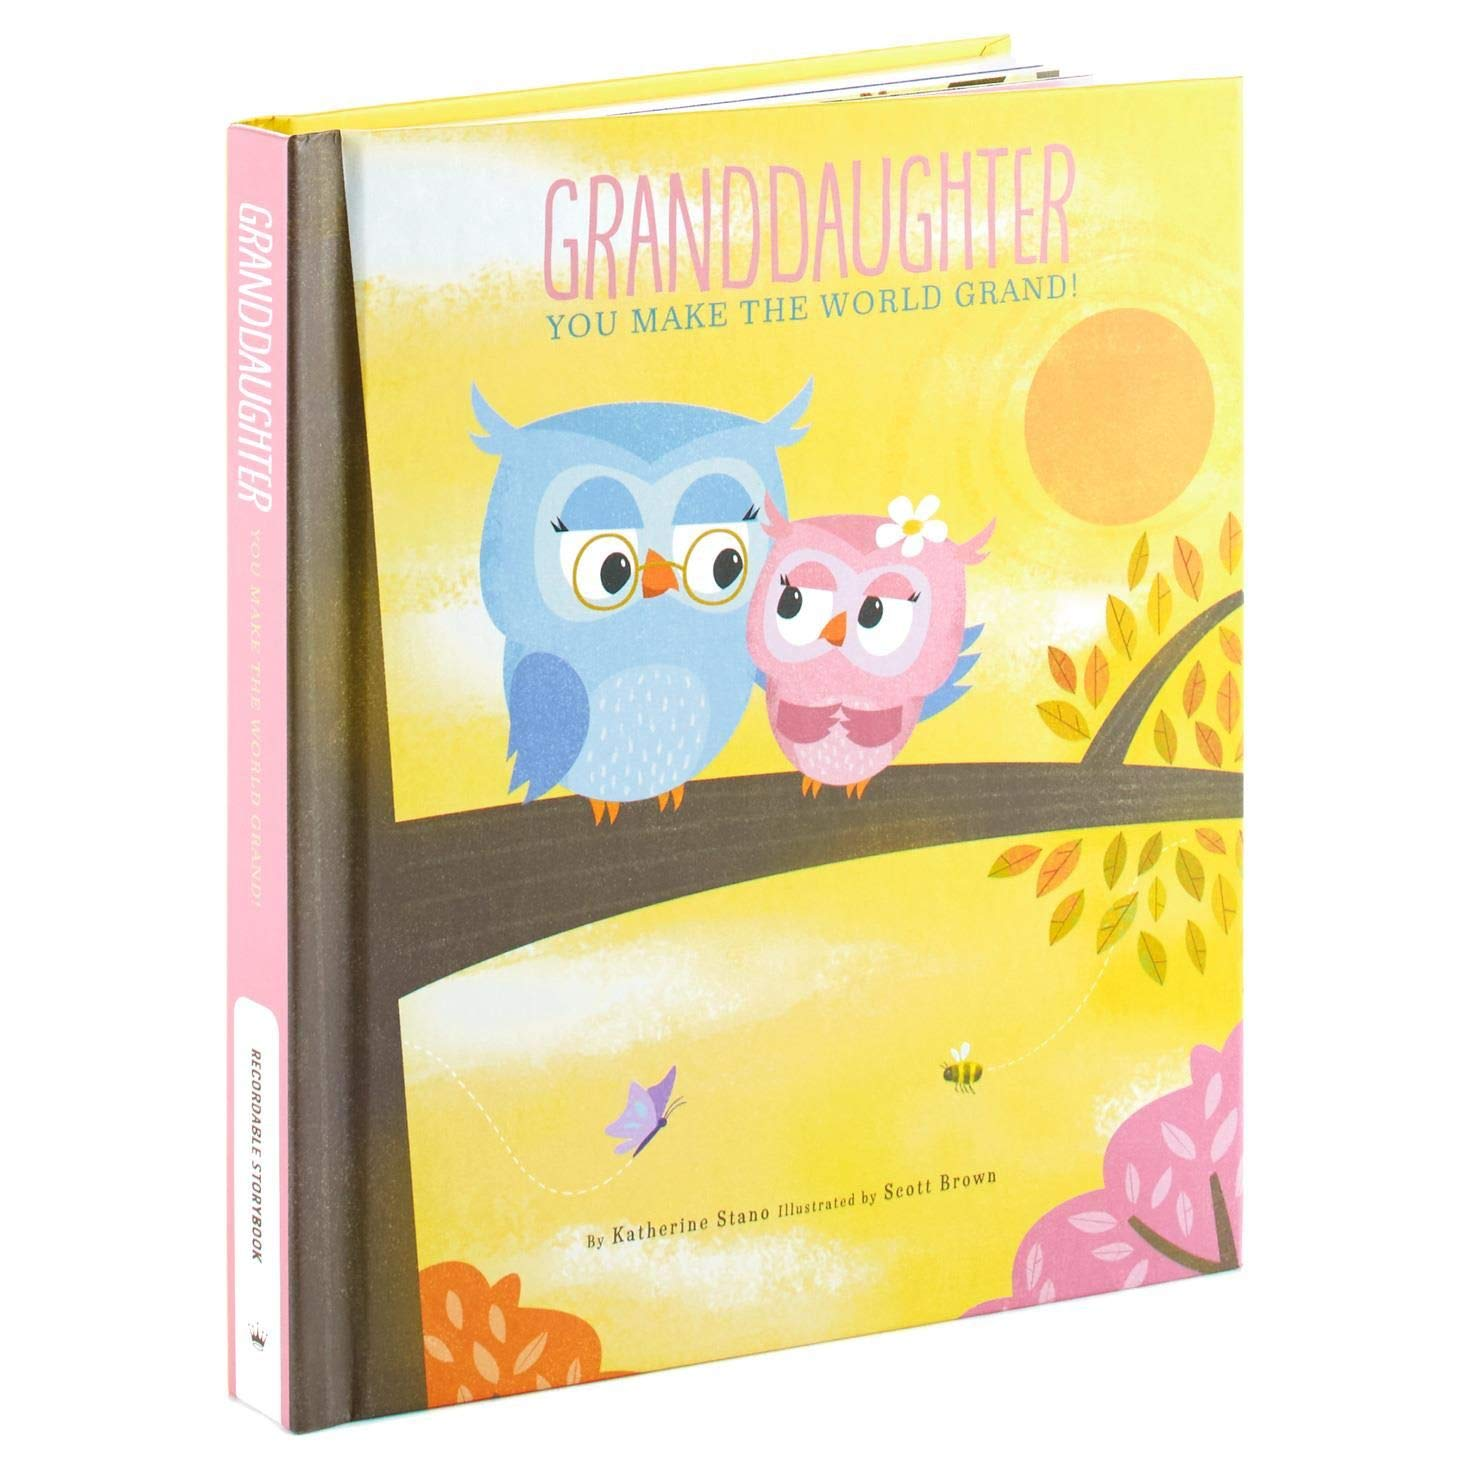 Hallmark Granddaughter You Make The World Grand! Recordable Storybook Recordable Storybooks Juvenile Fiction by Hallmark (Image #1)